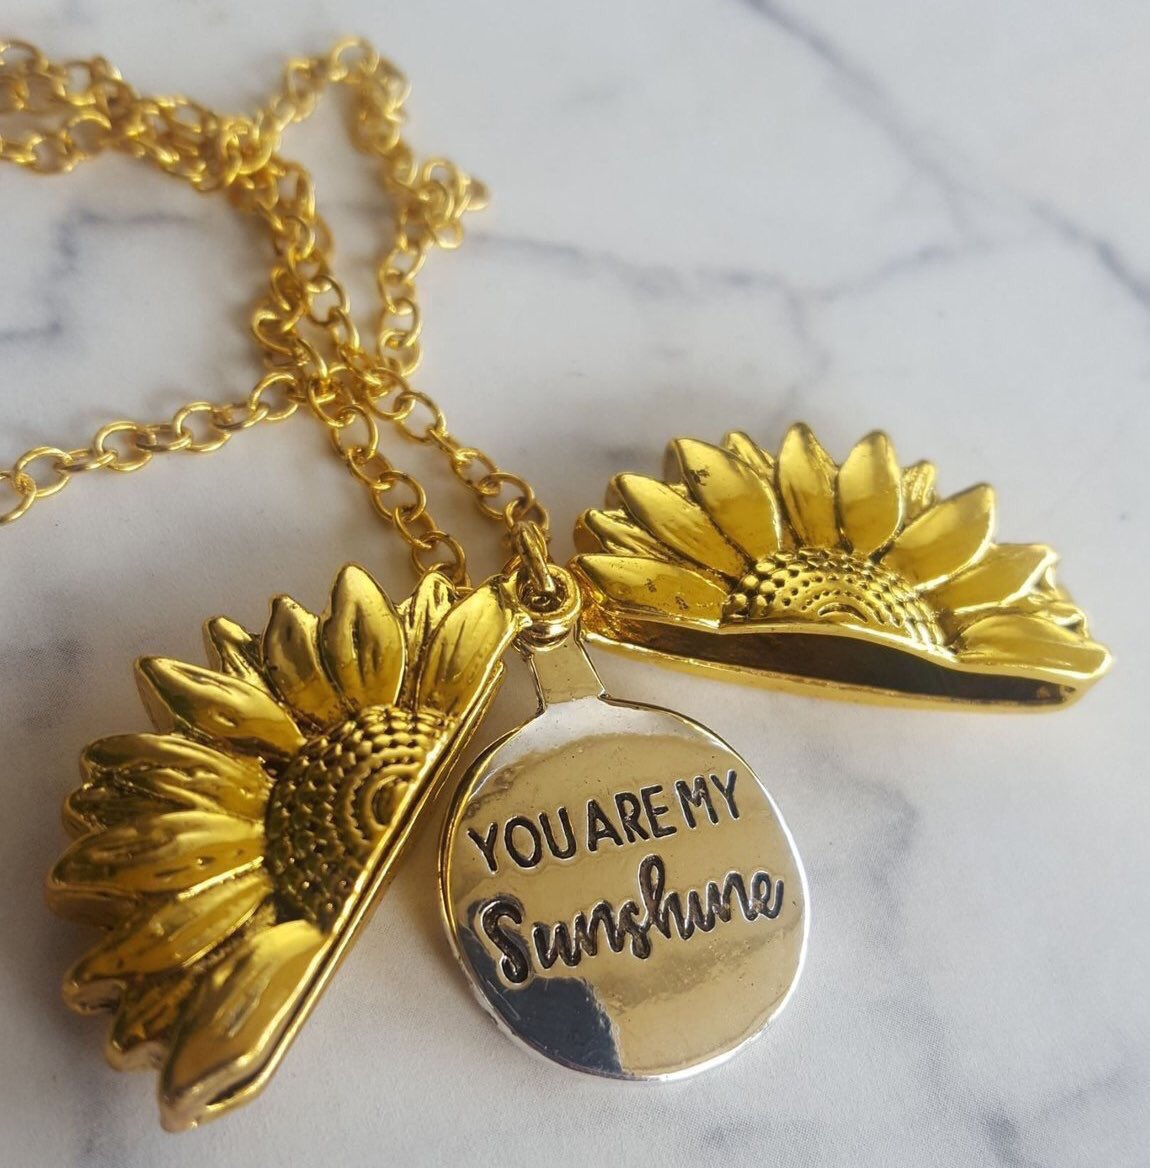 Replying to @vessamoniku: Your third @ has to buy you this necklace